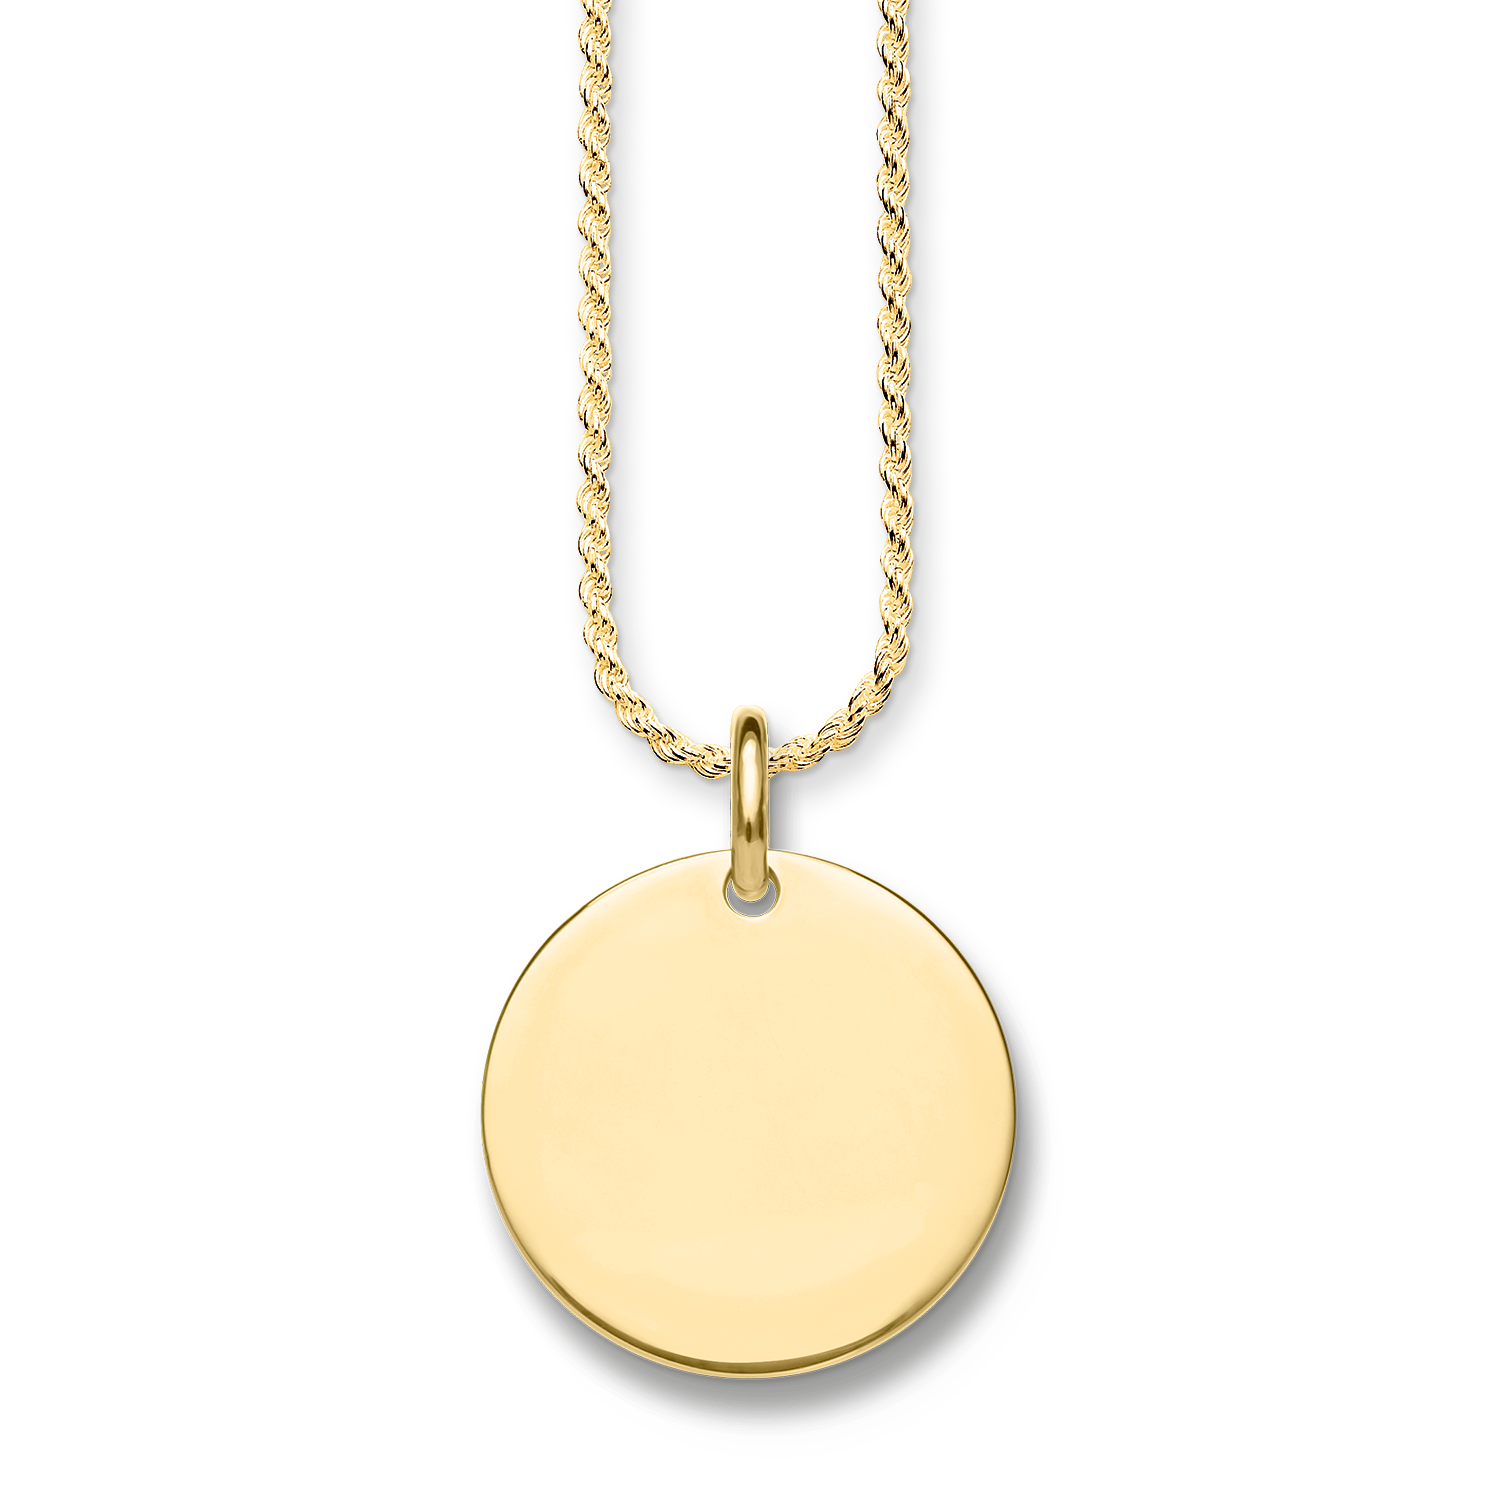 Thomas Sabo - personalised necklace - 1